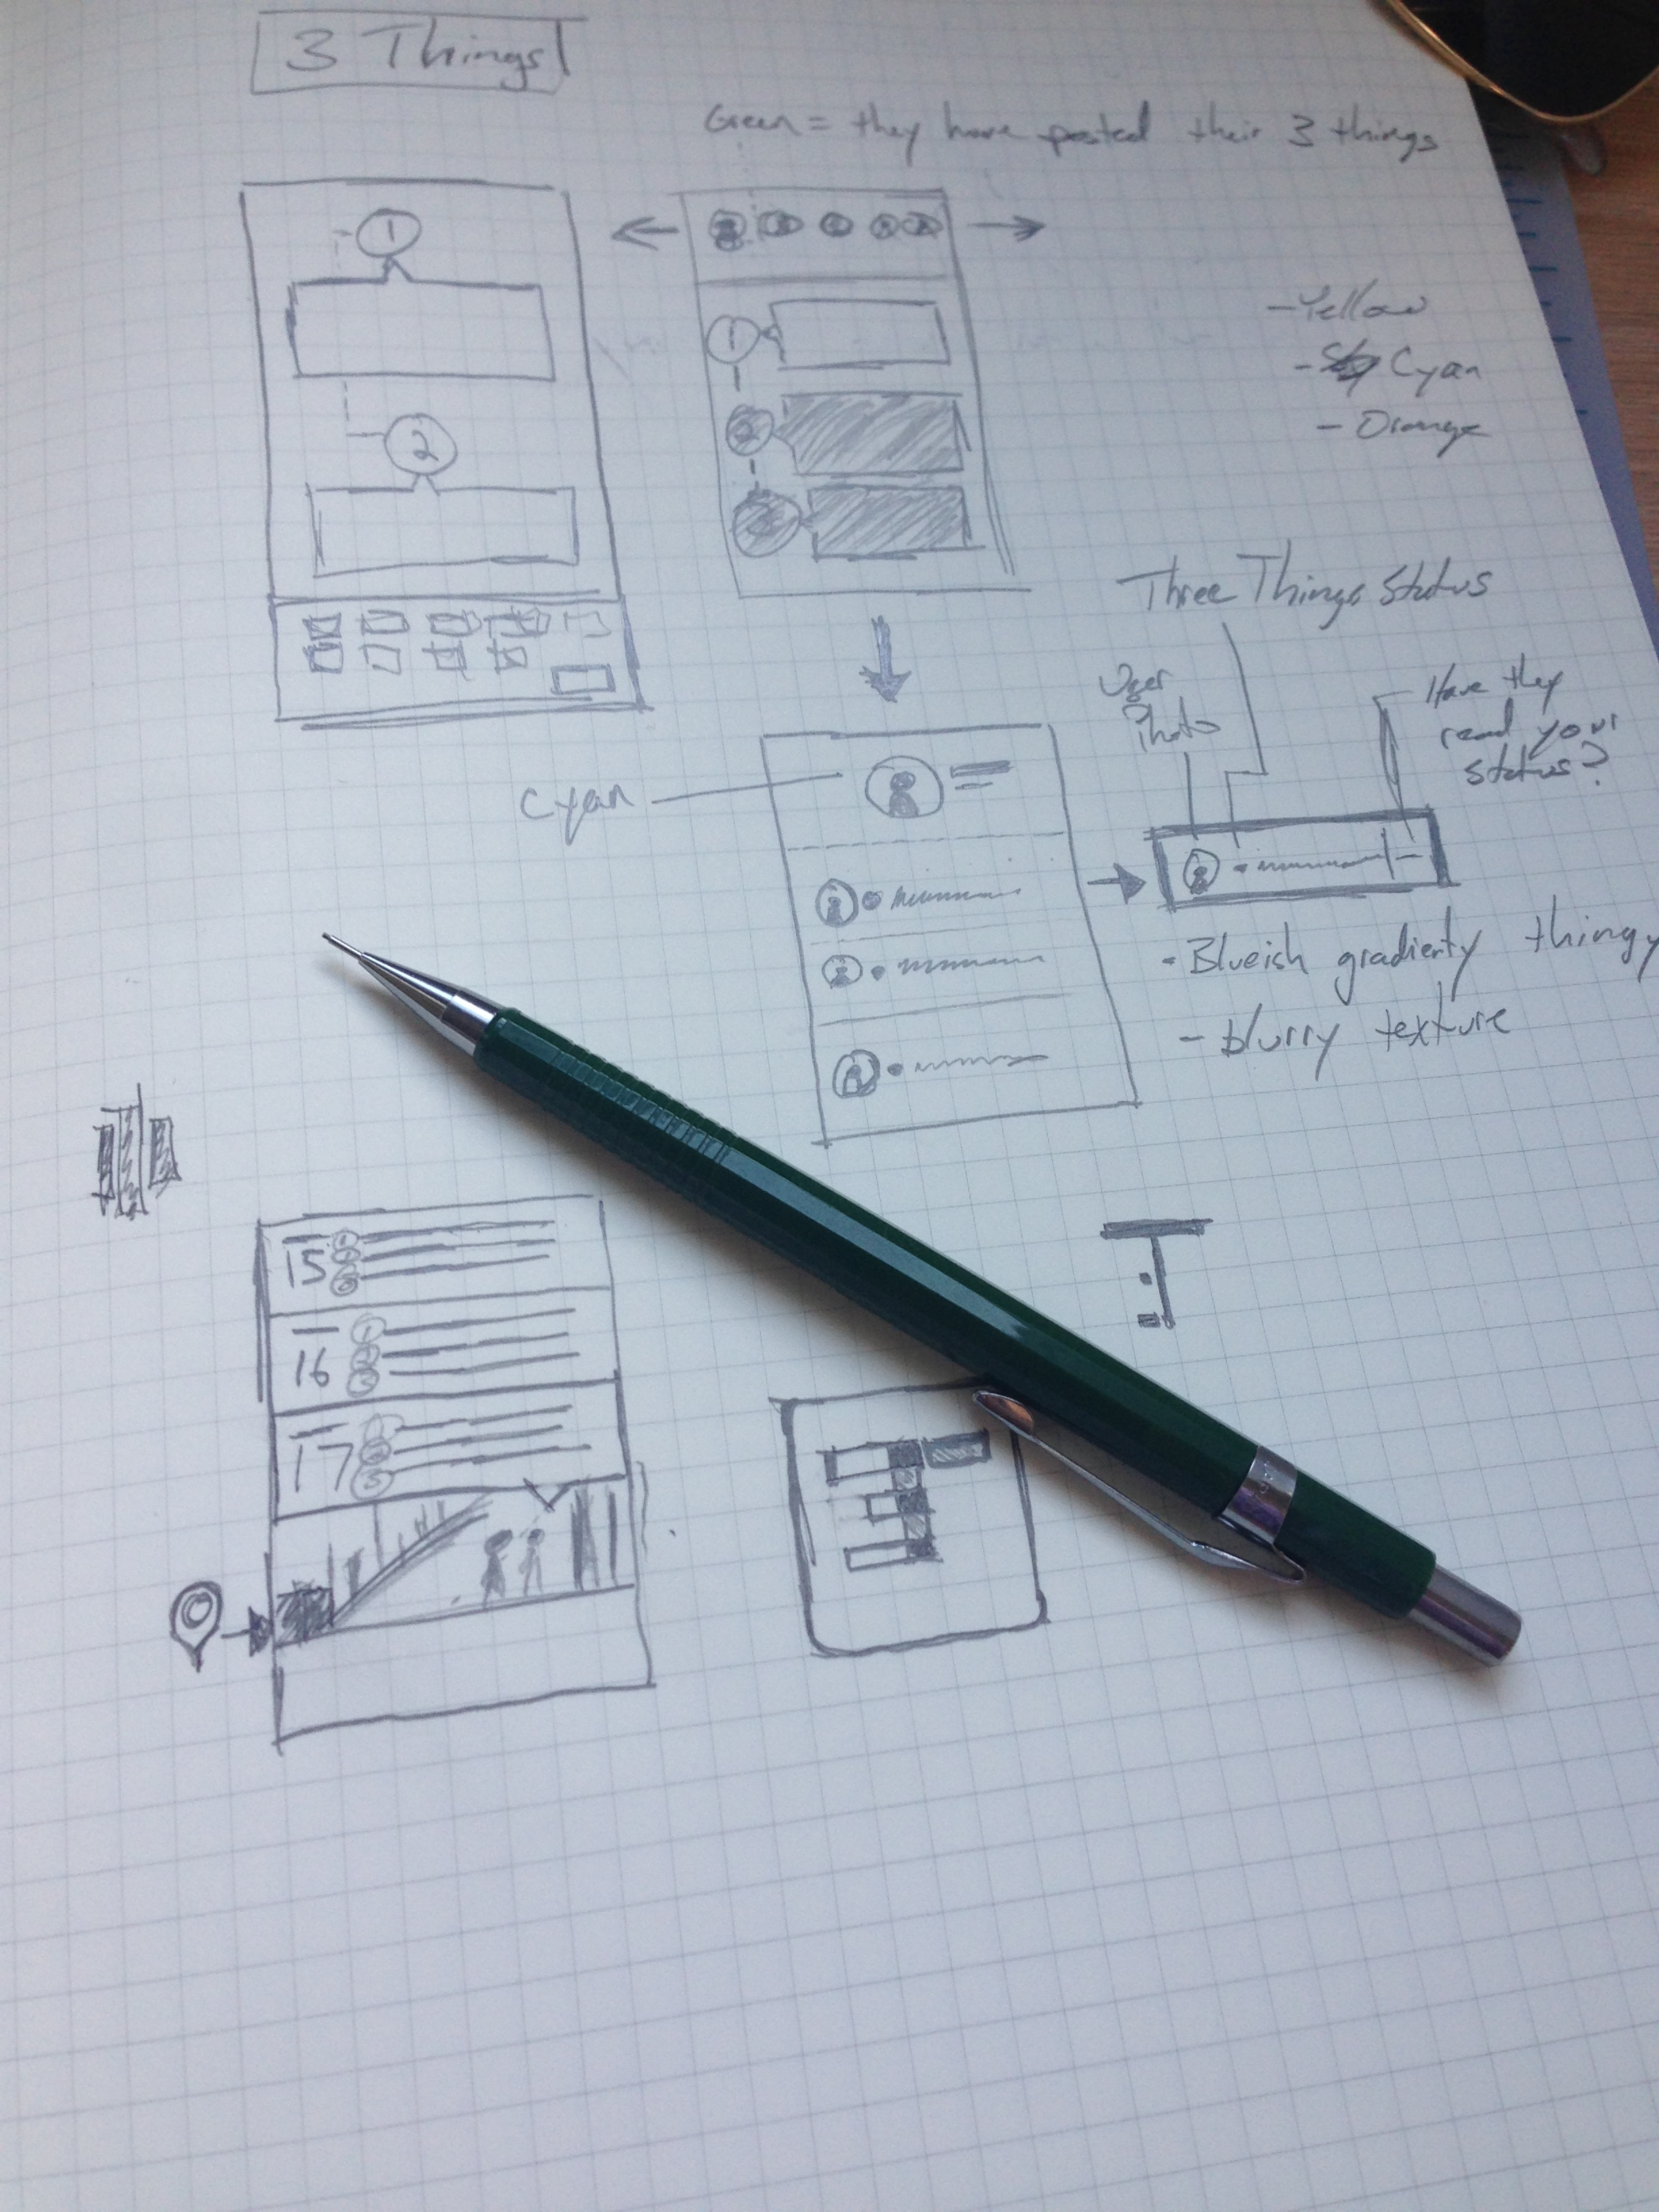 Wireframes of the UI for Three Things